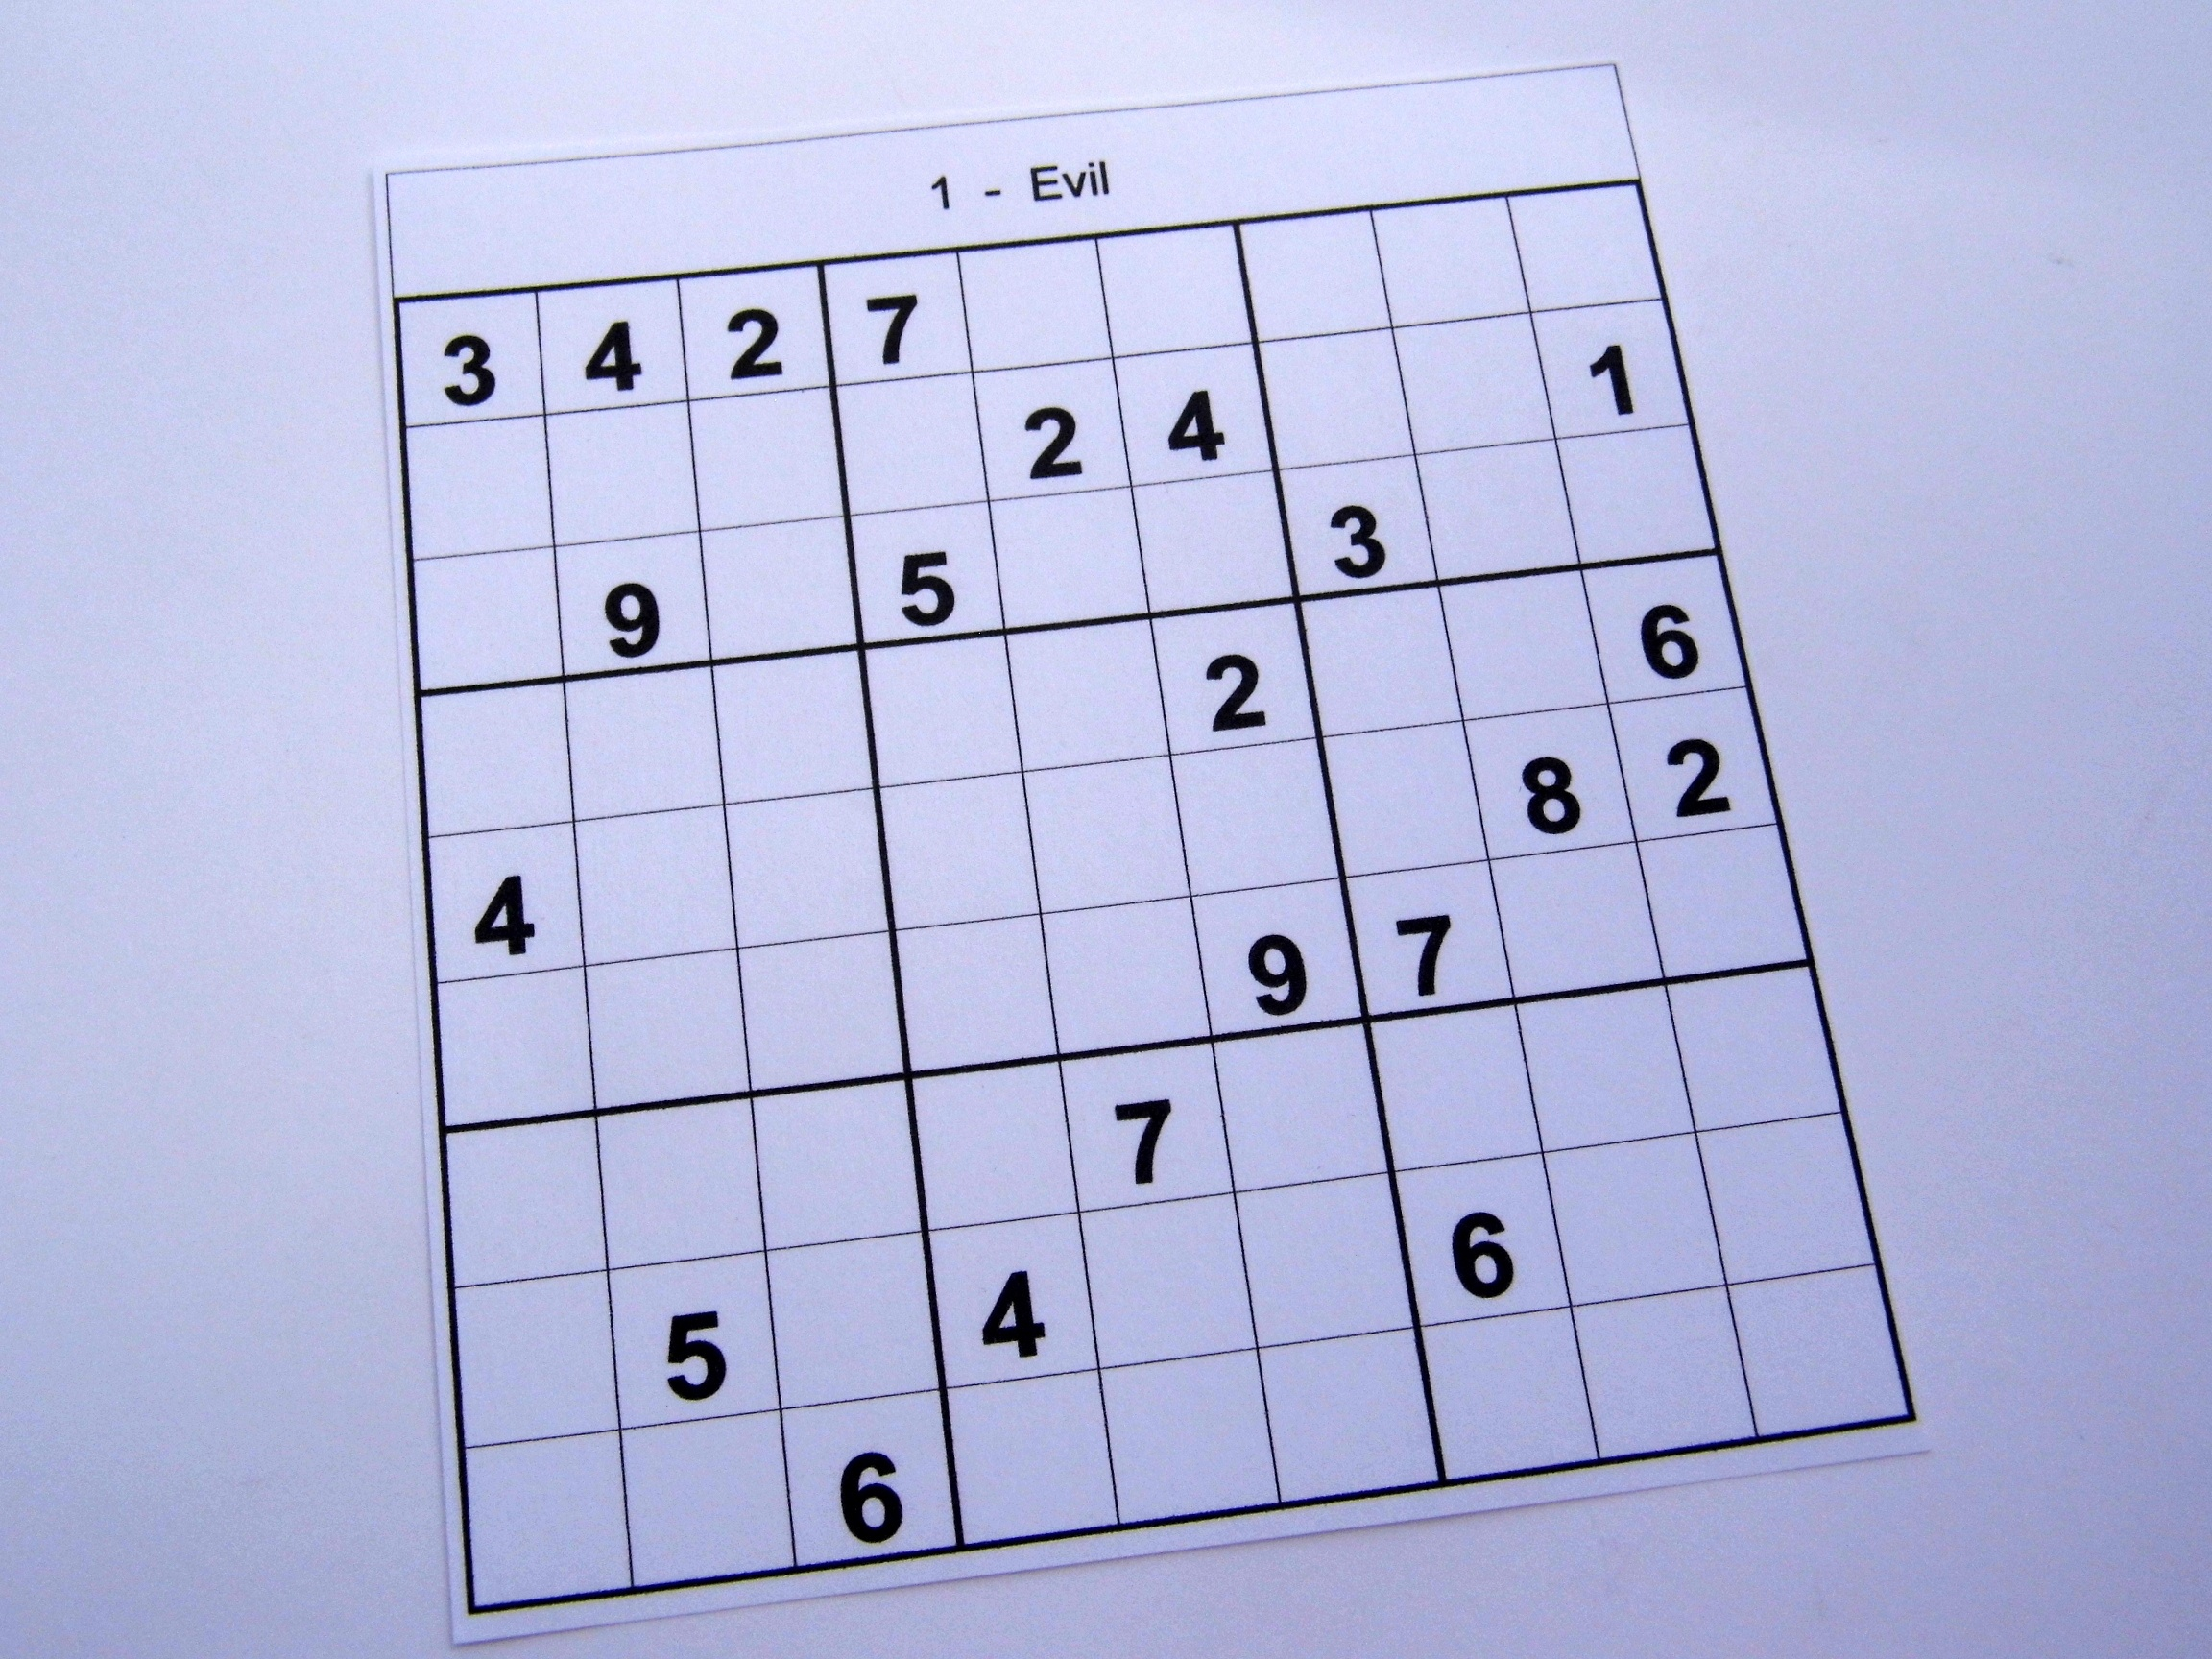 Hard Printable Sudoku Puzzles 2 Per Page – Book 1 – Free Sudoku Puzzles - Free Printable Sudoku Books